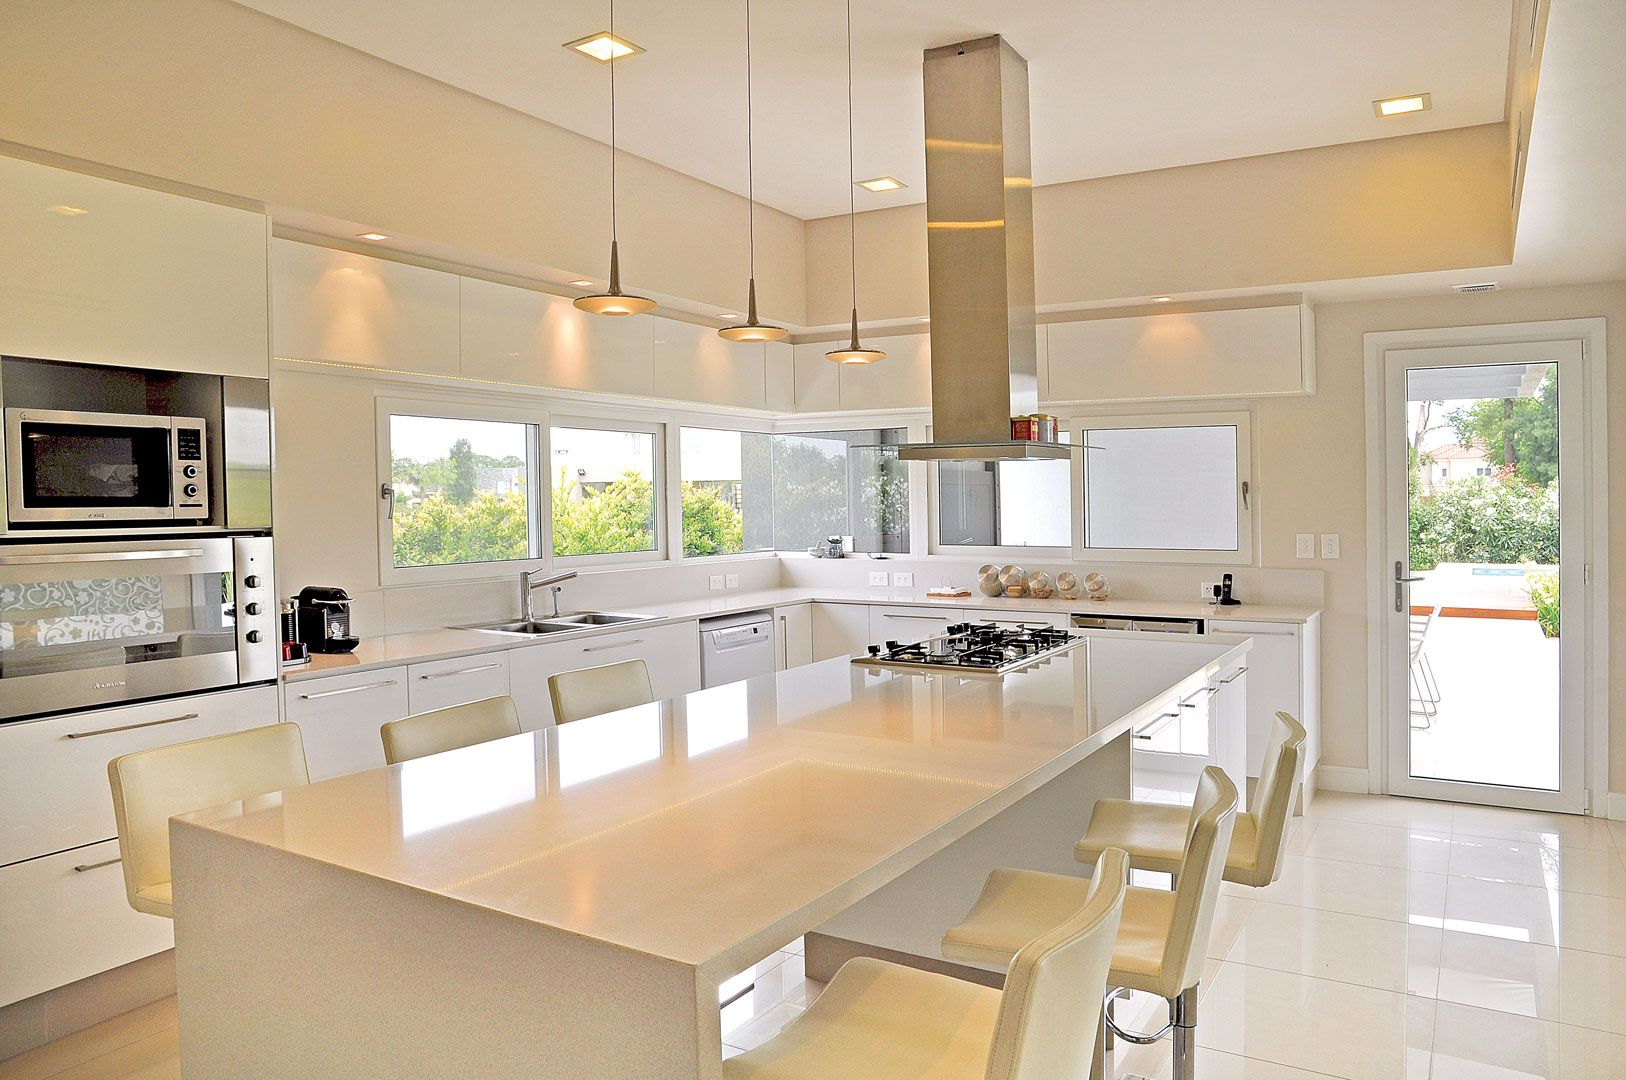 Ar arquitectos kitchens ideas para and kitchen design